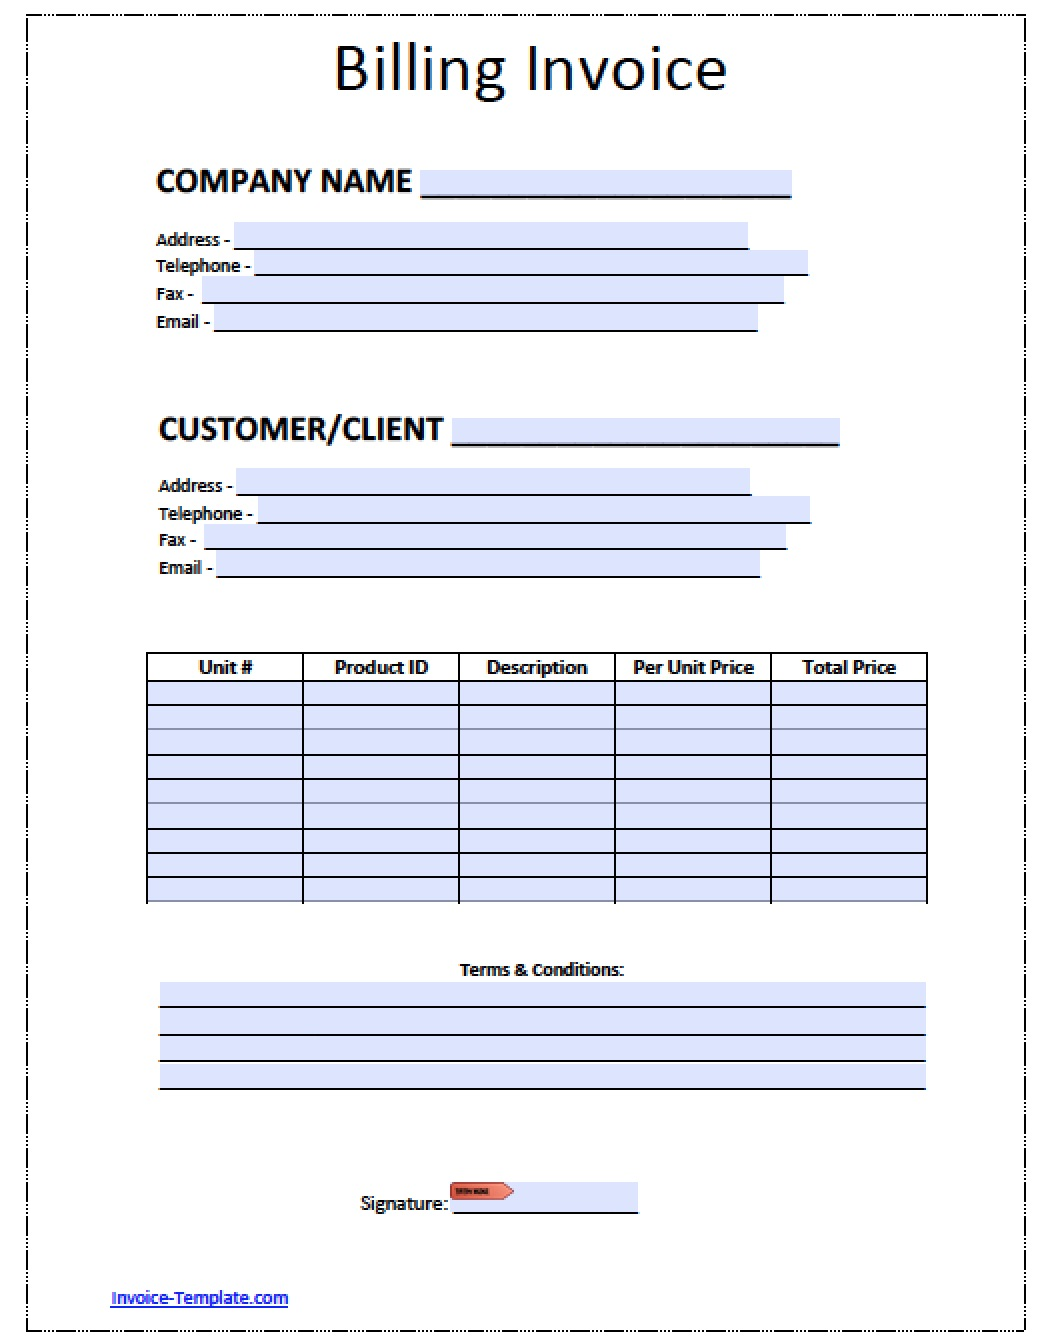 Free Billing Invoice Template Excel PDF Word Doc - Free billing invoice templates for service business